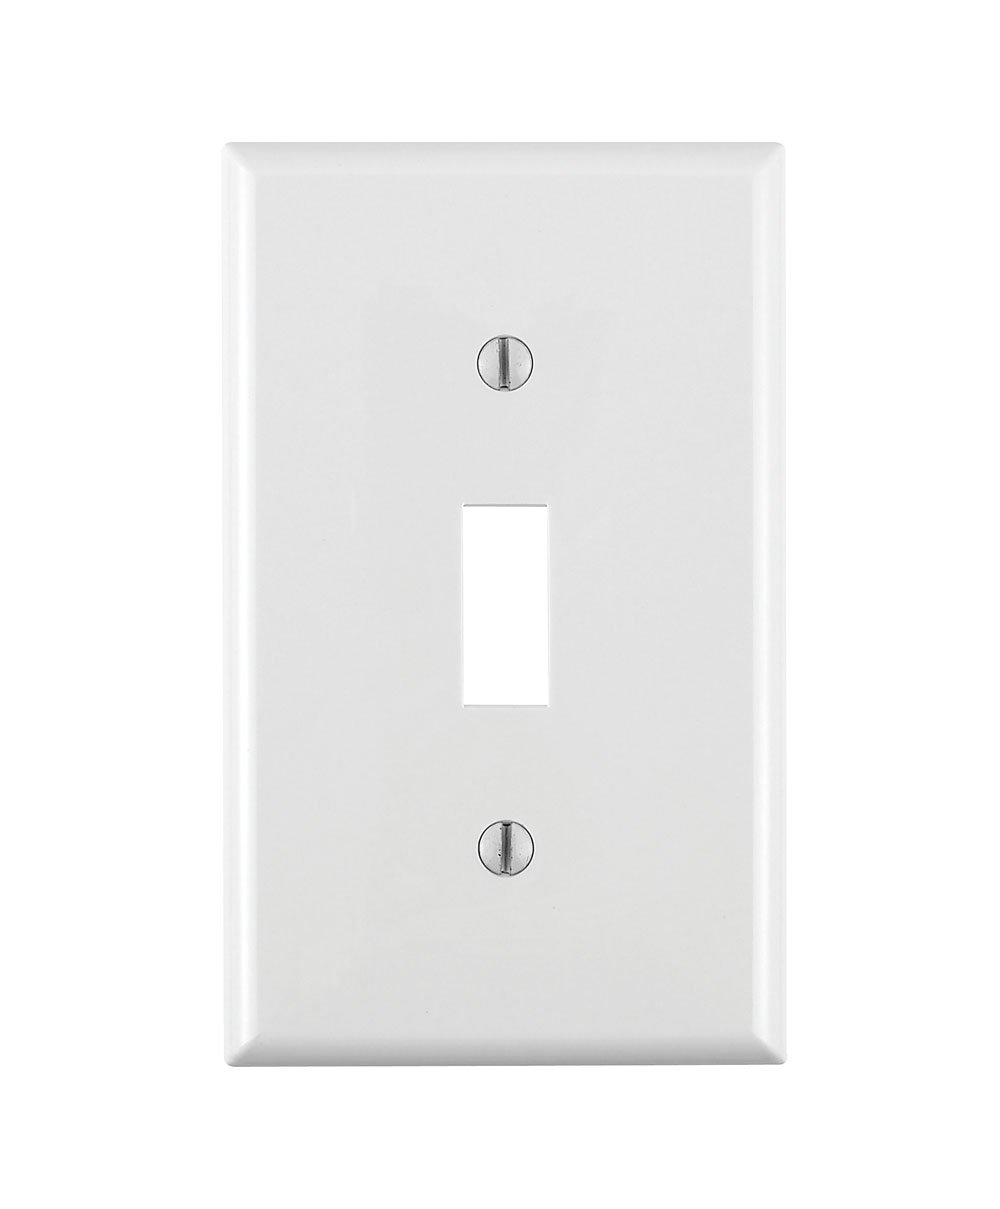 Leviton 80701-W 1-Toggle Standard Size Wall Plate, 1 Gang, 4-1/2 In L X 2-3/4 In W 0.22 In T, Smooth 1 1-Pack, White